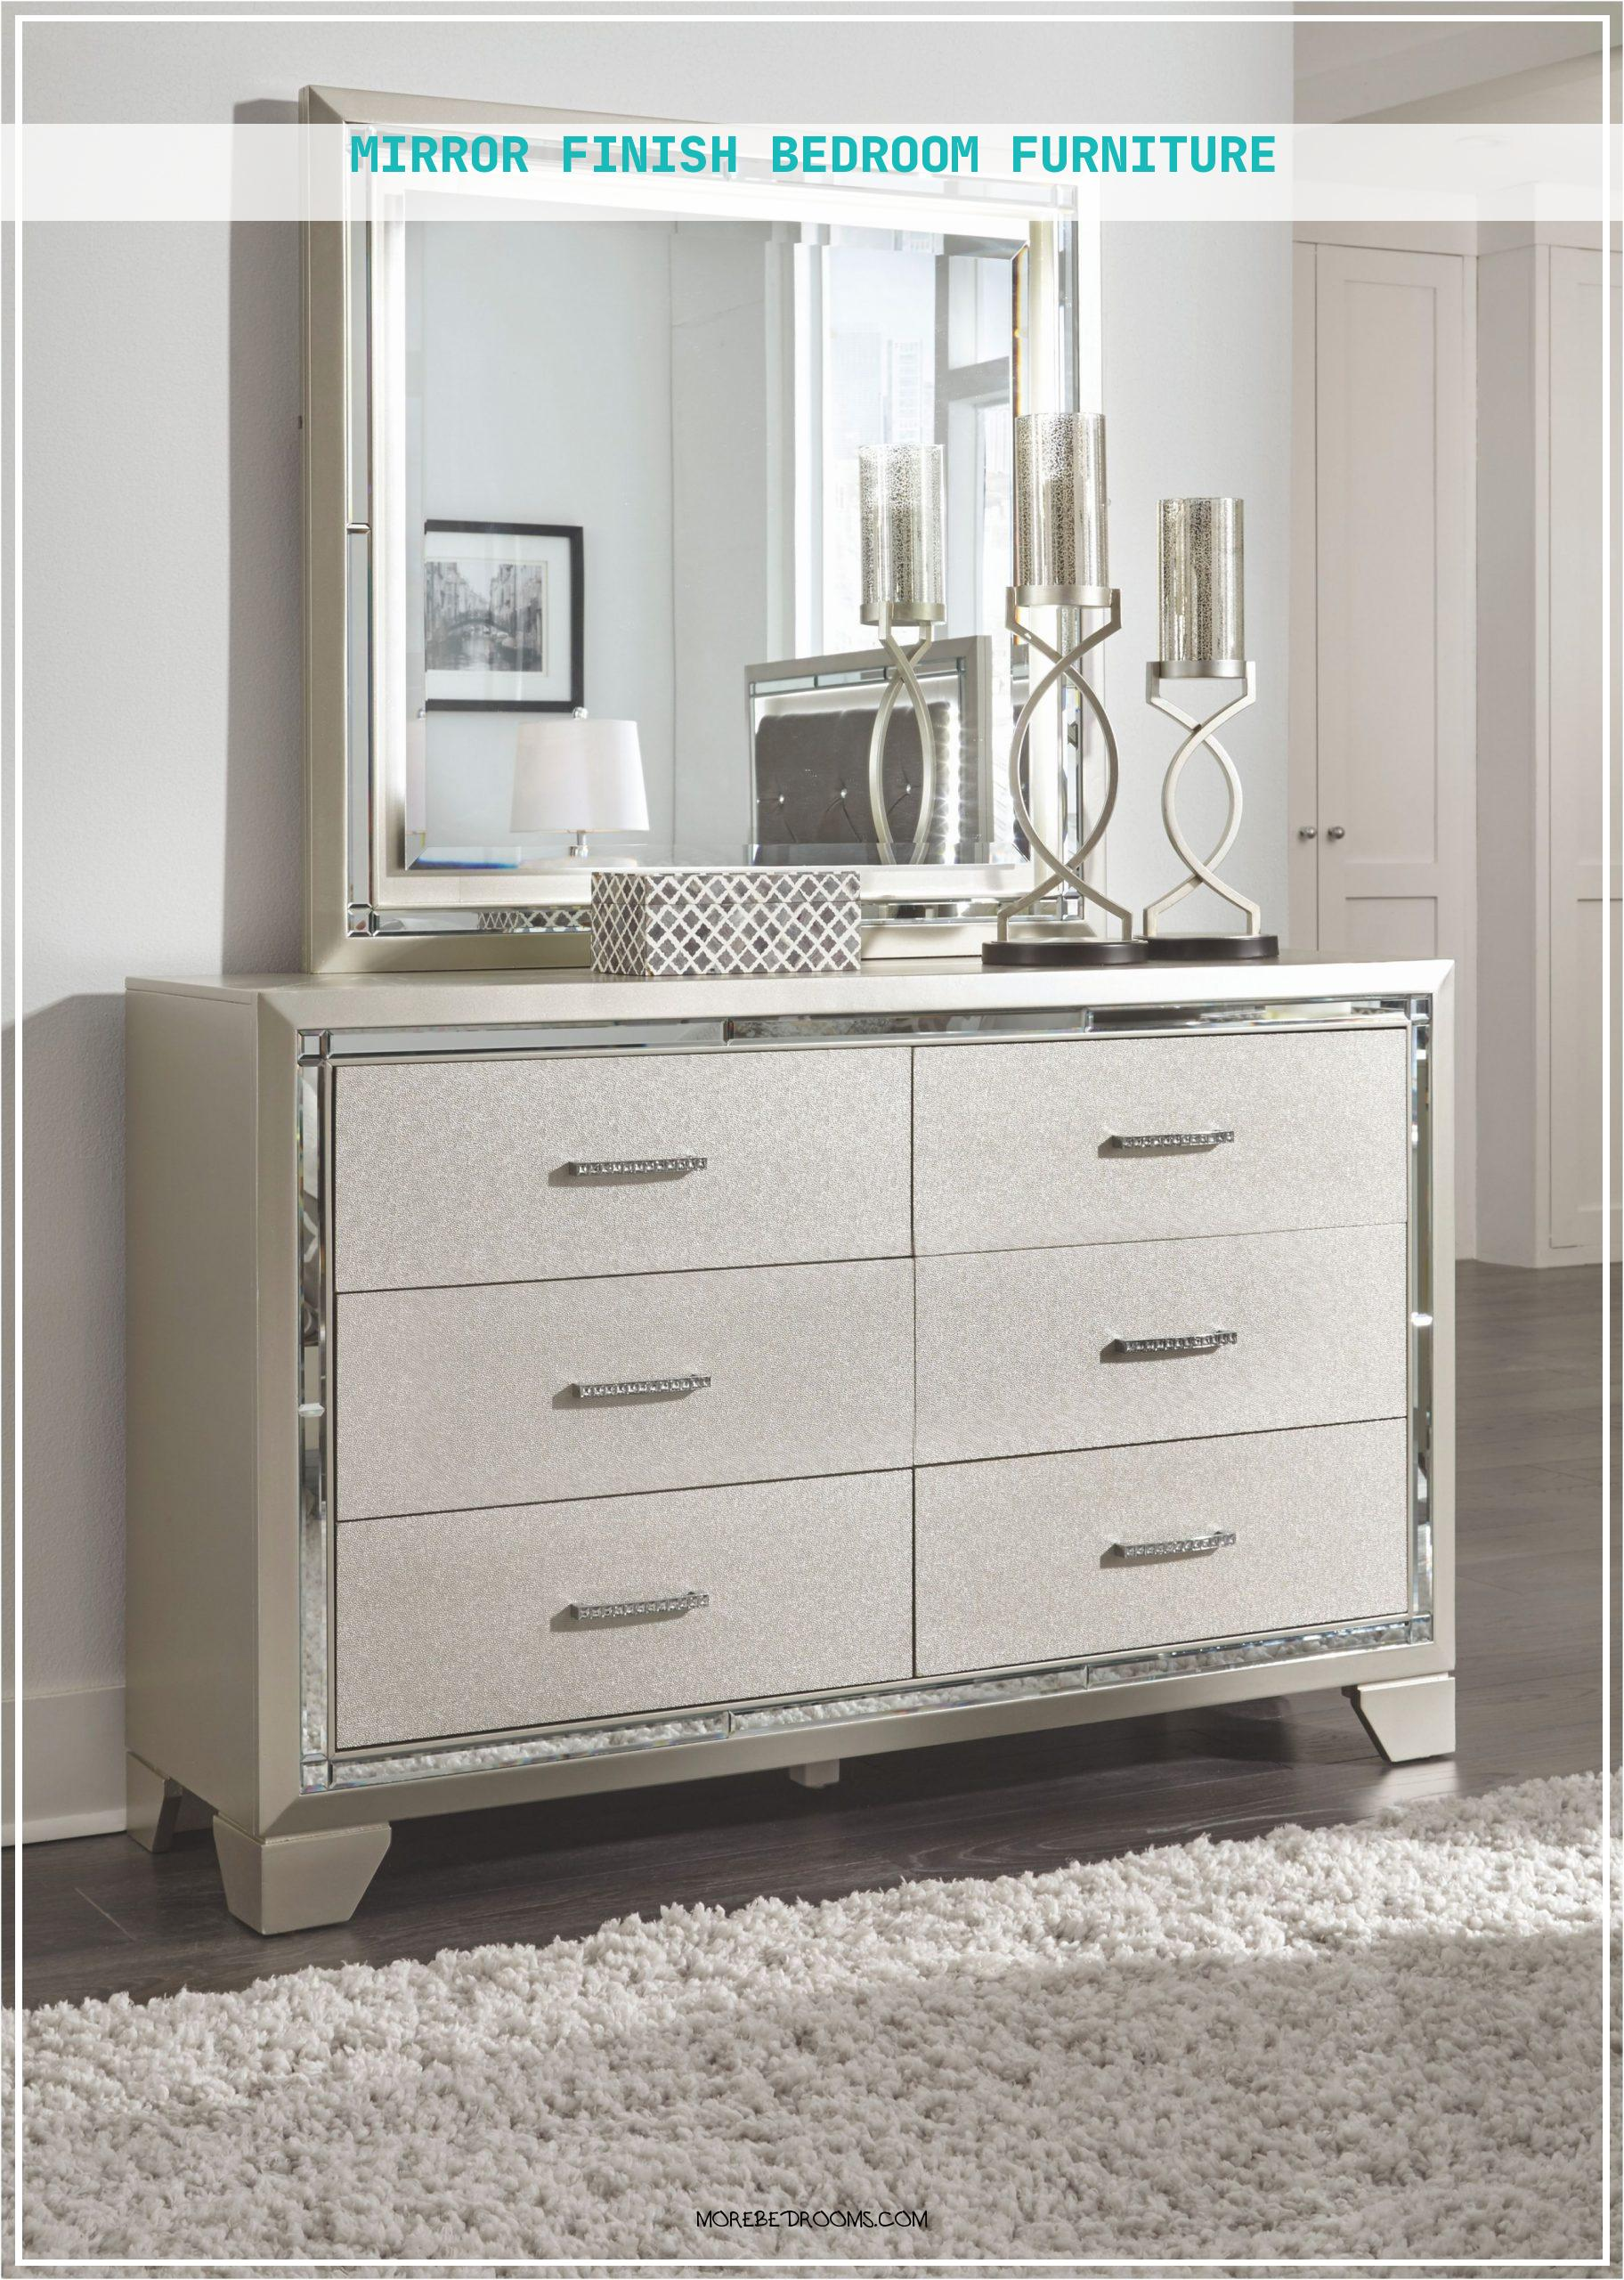 Mirror Finish Bedroom Furniture Nzhjfg Lovely Lonnix Silver Finish Bedroom Mirror18242560zofr